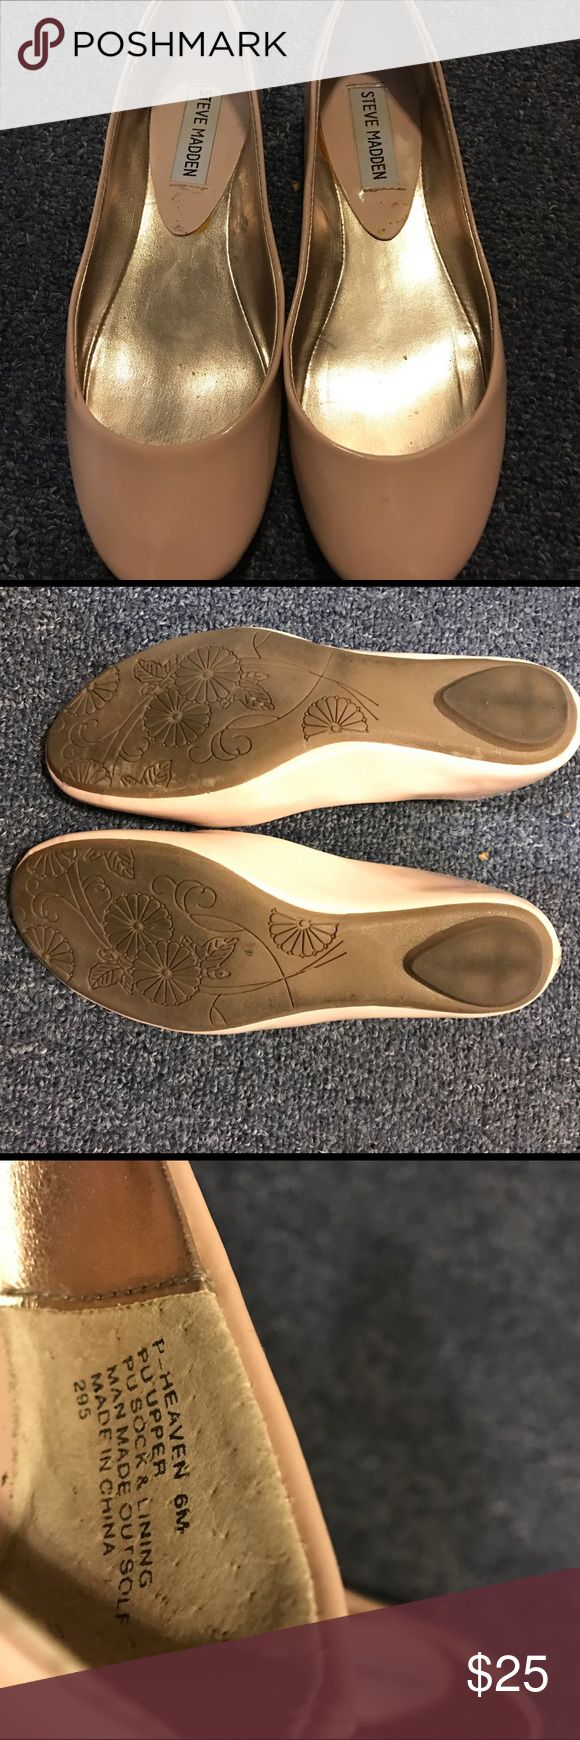 Steve Madden pale pink flats Worn only twice! Pale pink ballet flats Steve Madden Shoes Flats & Loafers